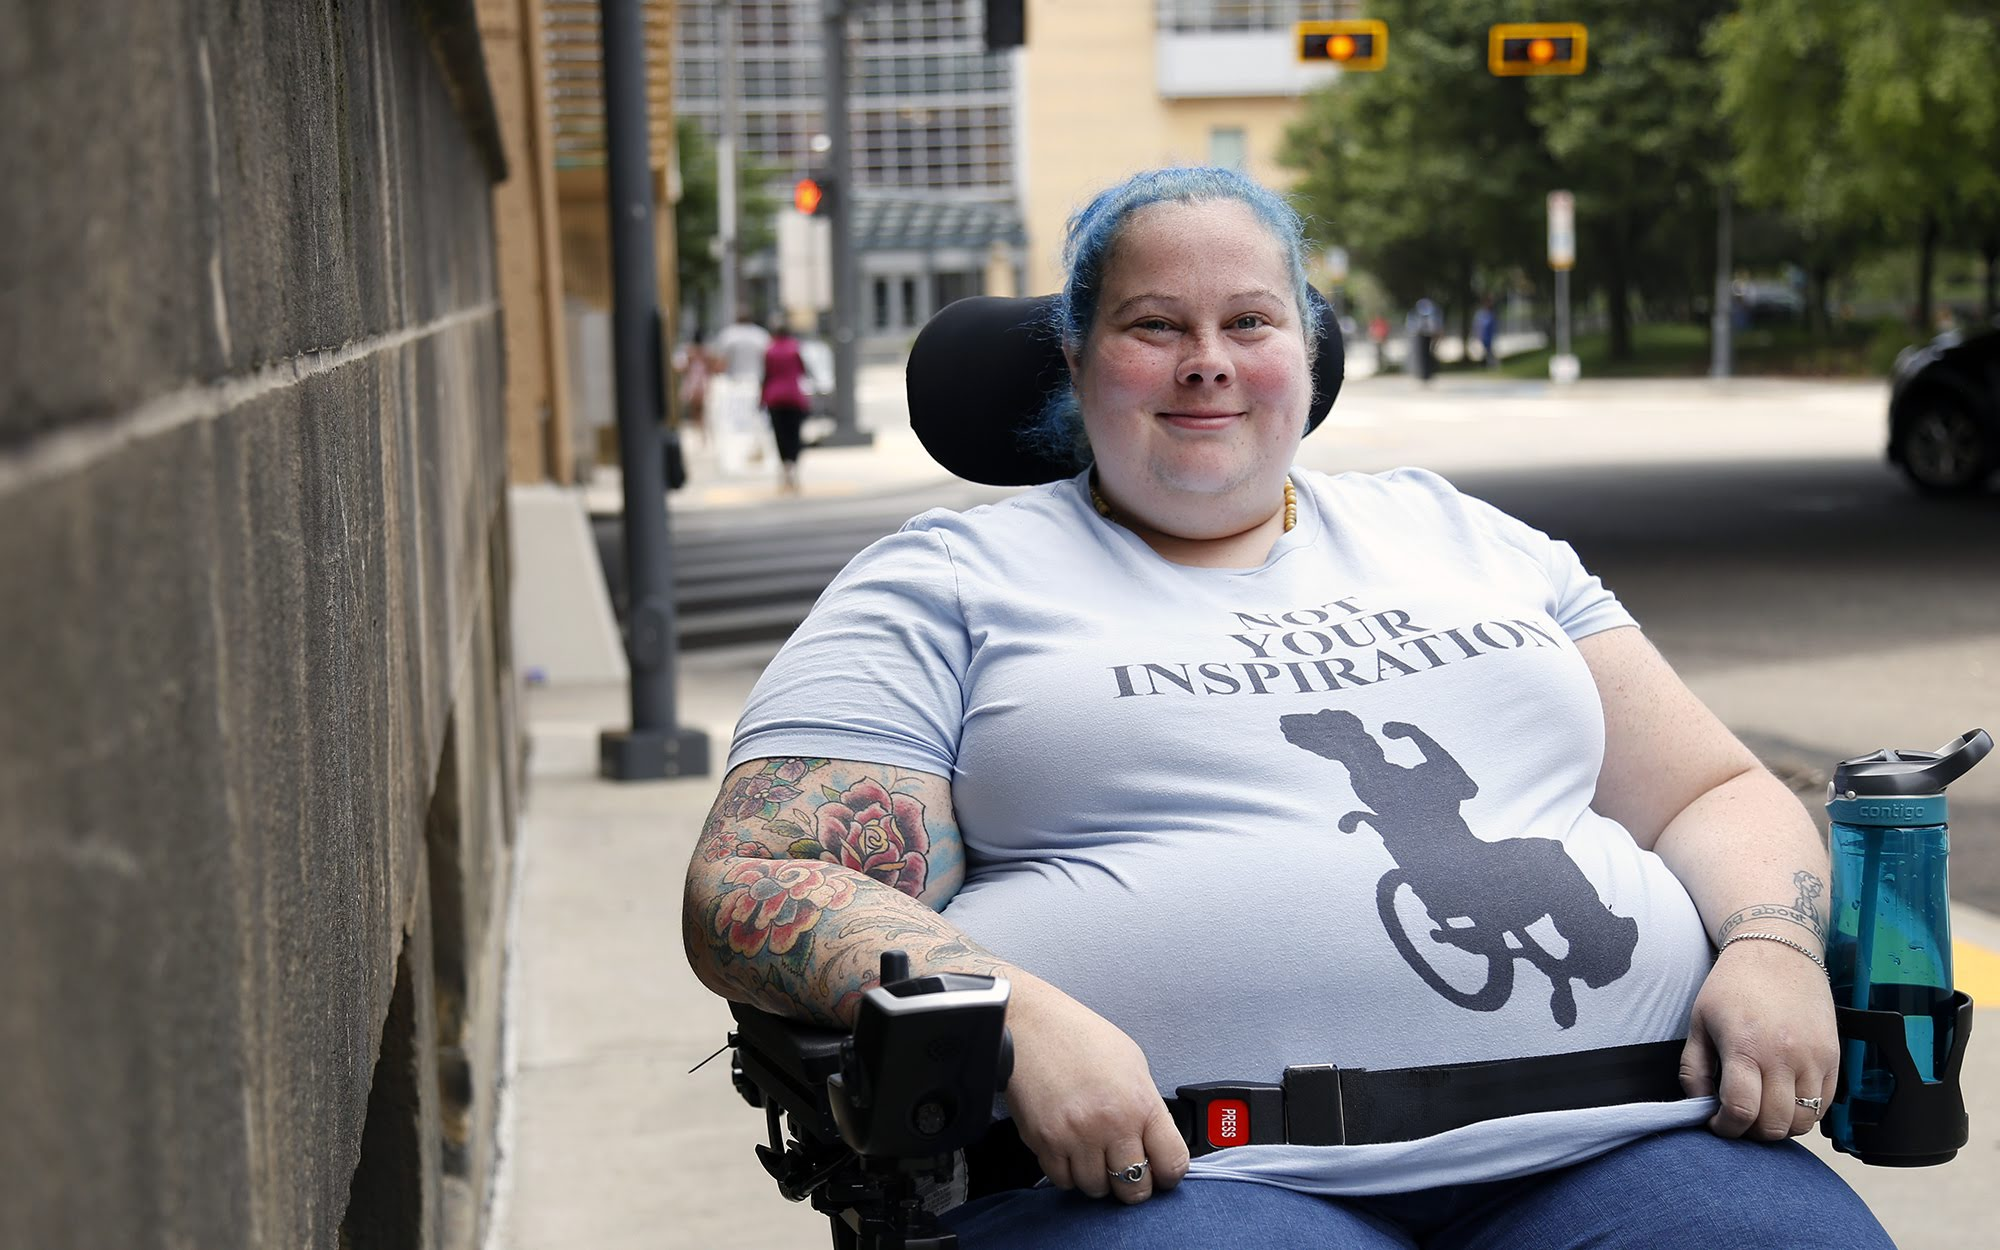 Alisa Grishman, founder of Access Mob Pittsburgh, is concerned about voter access for residents in care facilities. (Photo by Ryan Loew/PublicSource)